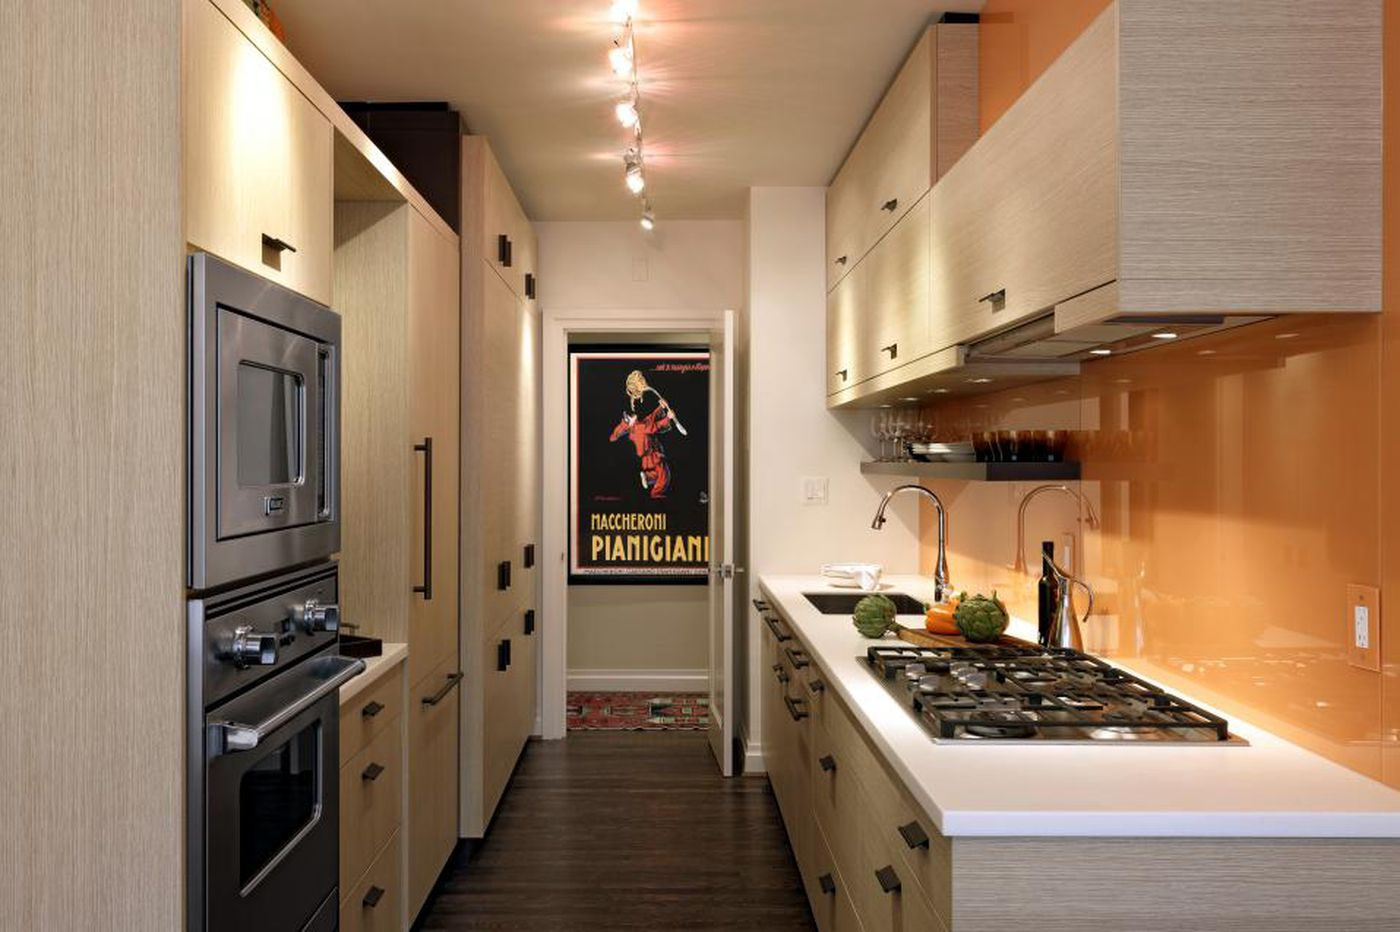 Sleek, simple galley kitchens compete with larger, eat-in spaces